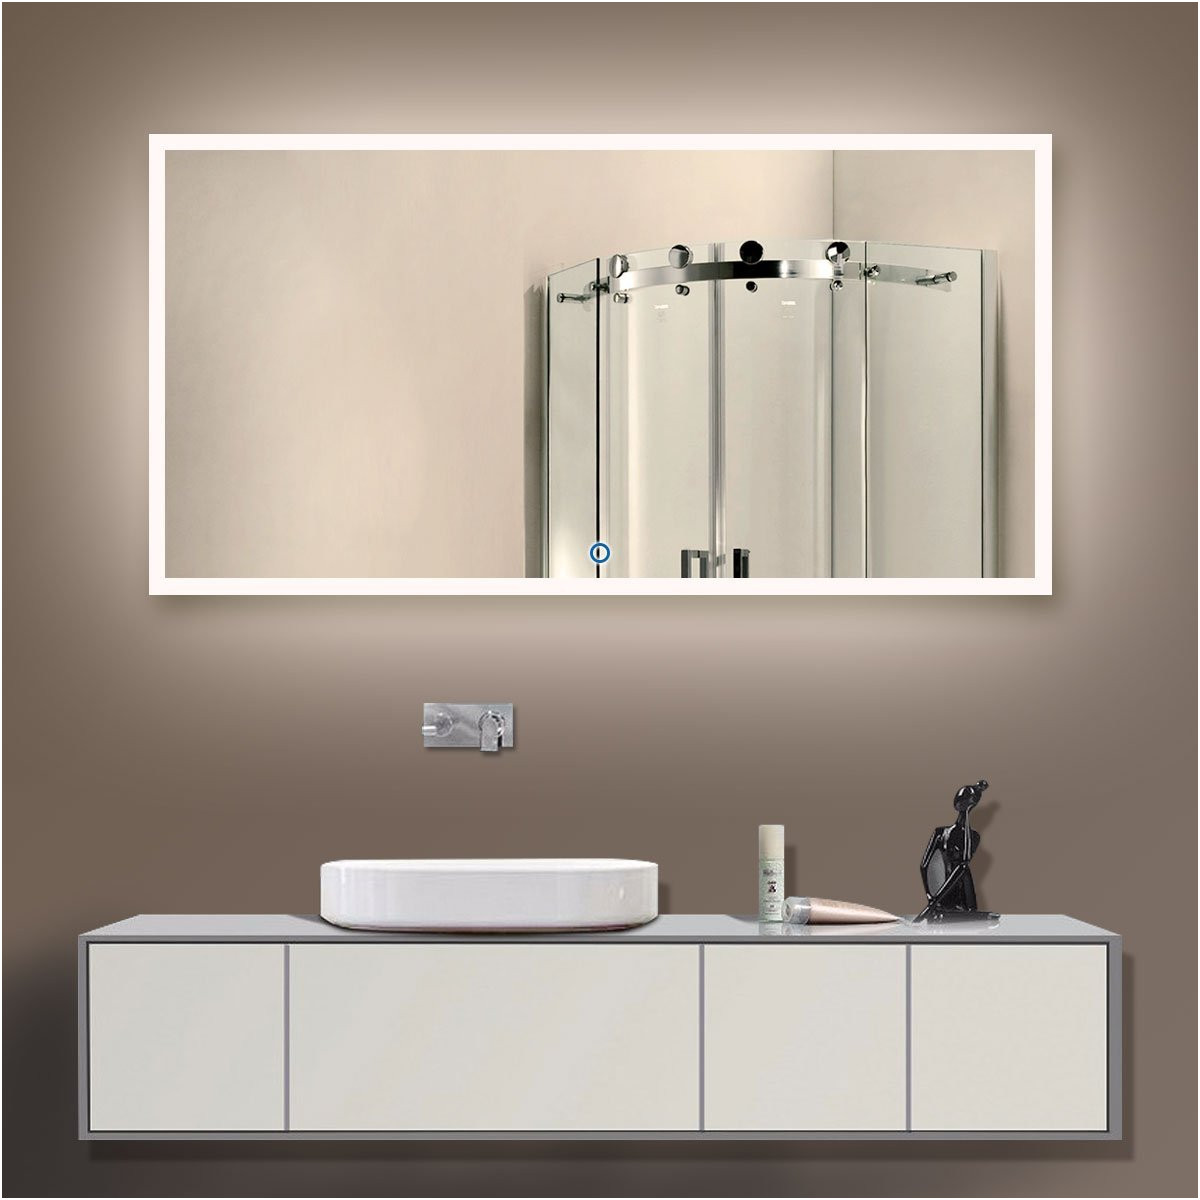 Extra Large Illuminated Bathroom Mirrors Elegant Long Led Bathroom Mirrors Mirror Style Backlit Round Porthole Tile